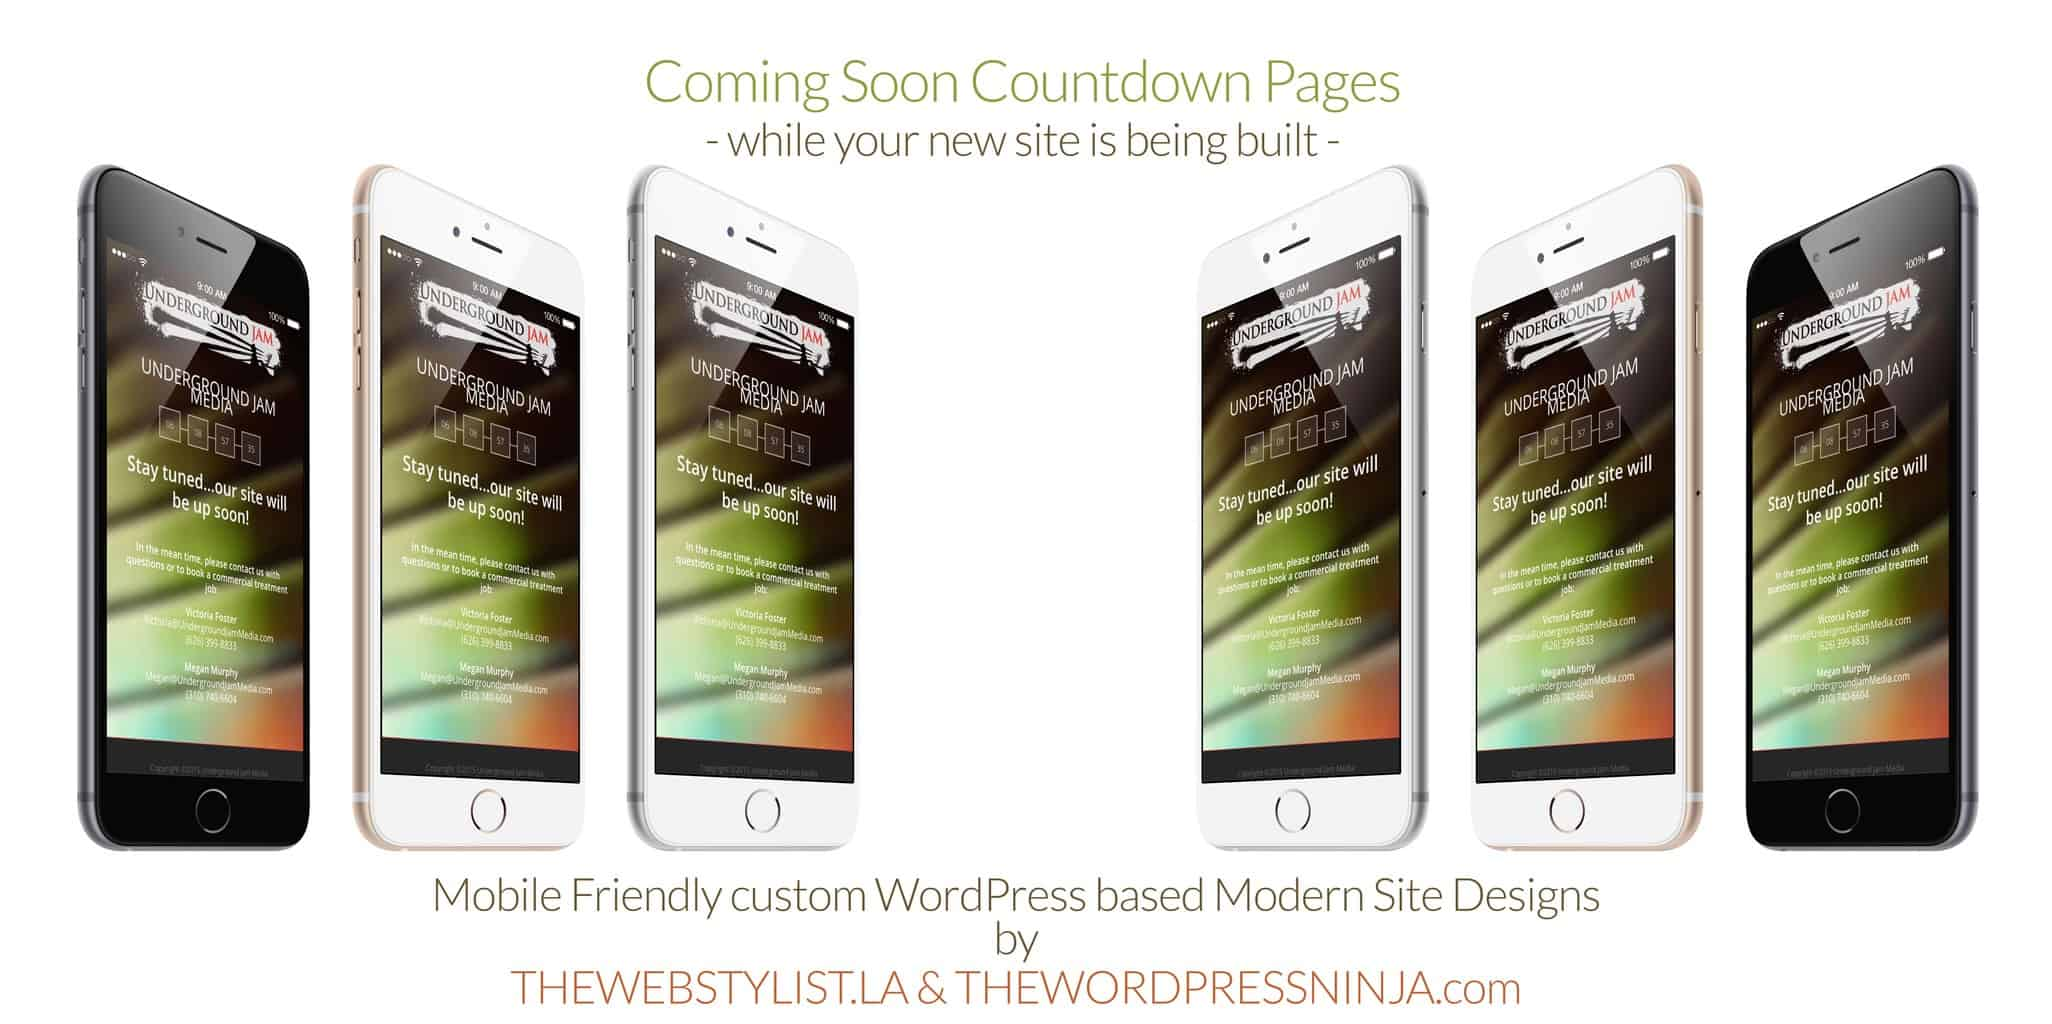 iPHONE6 Coming Soon Countdown Brand Mockups